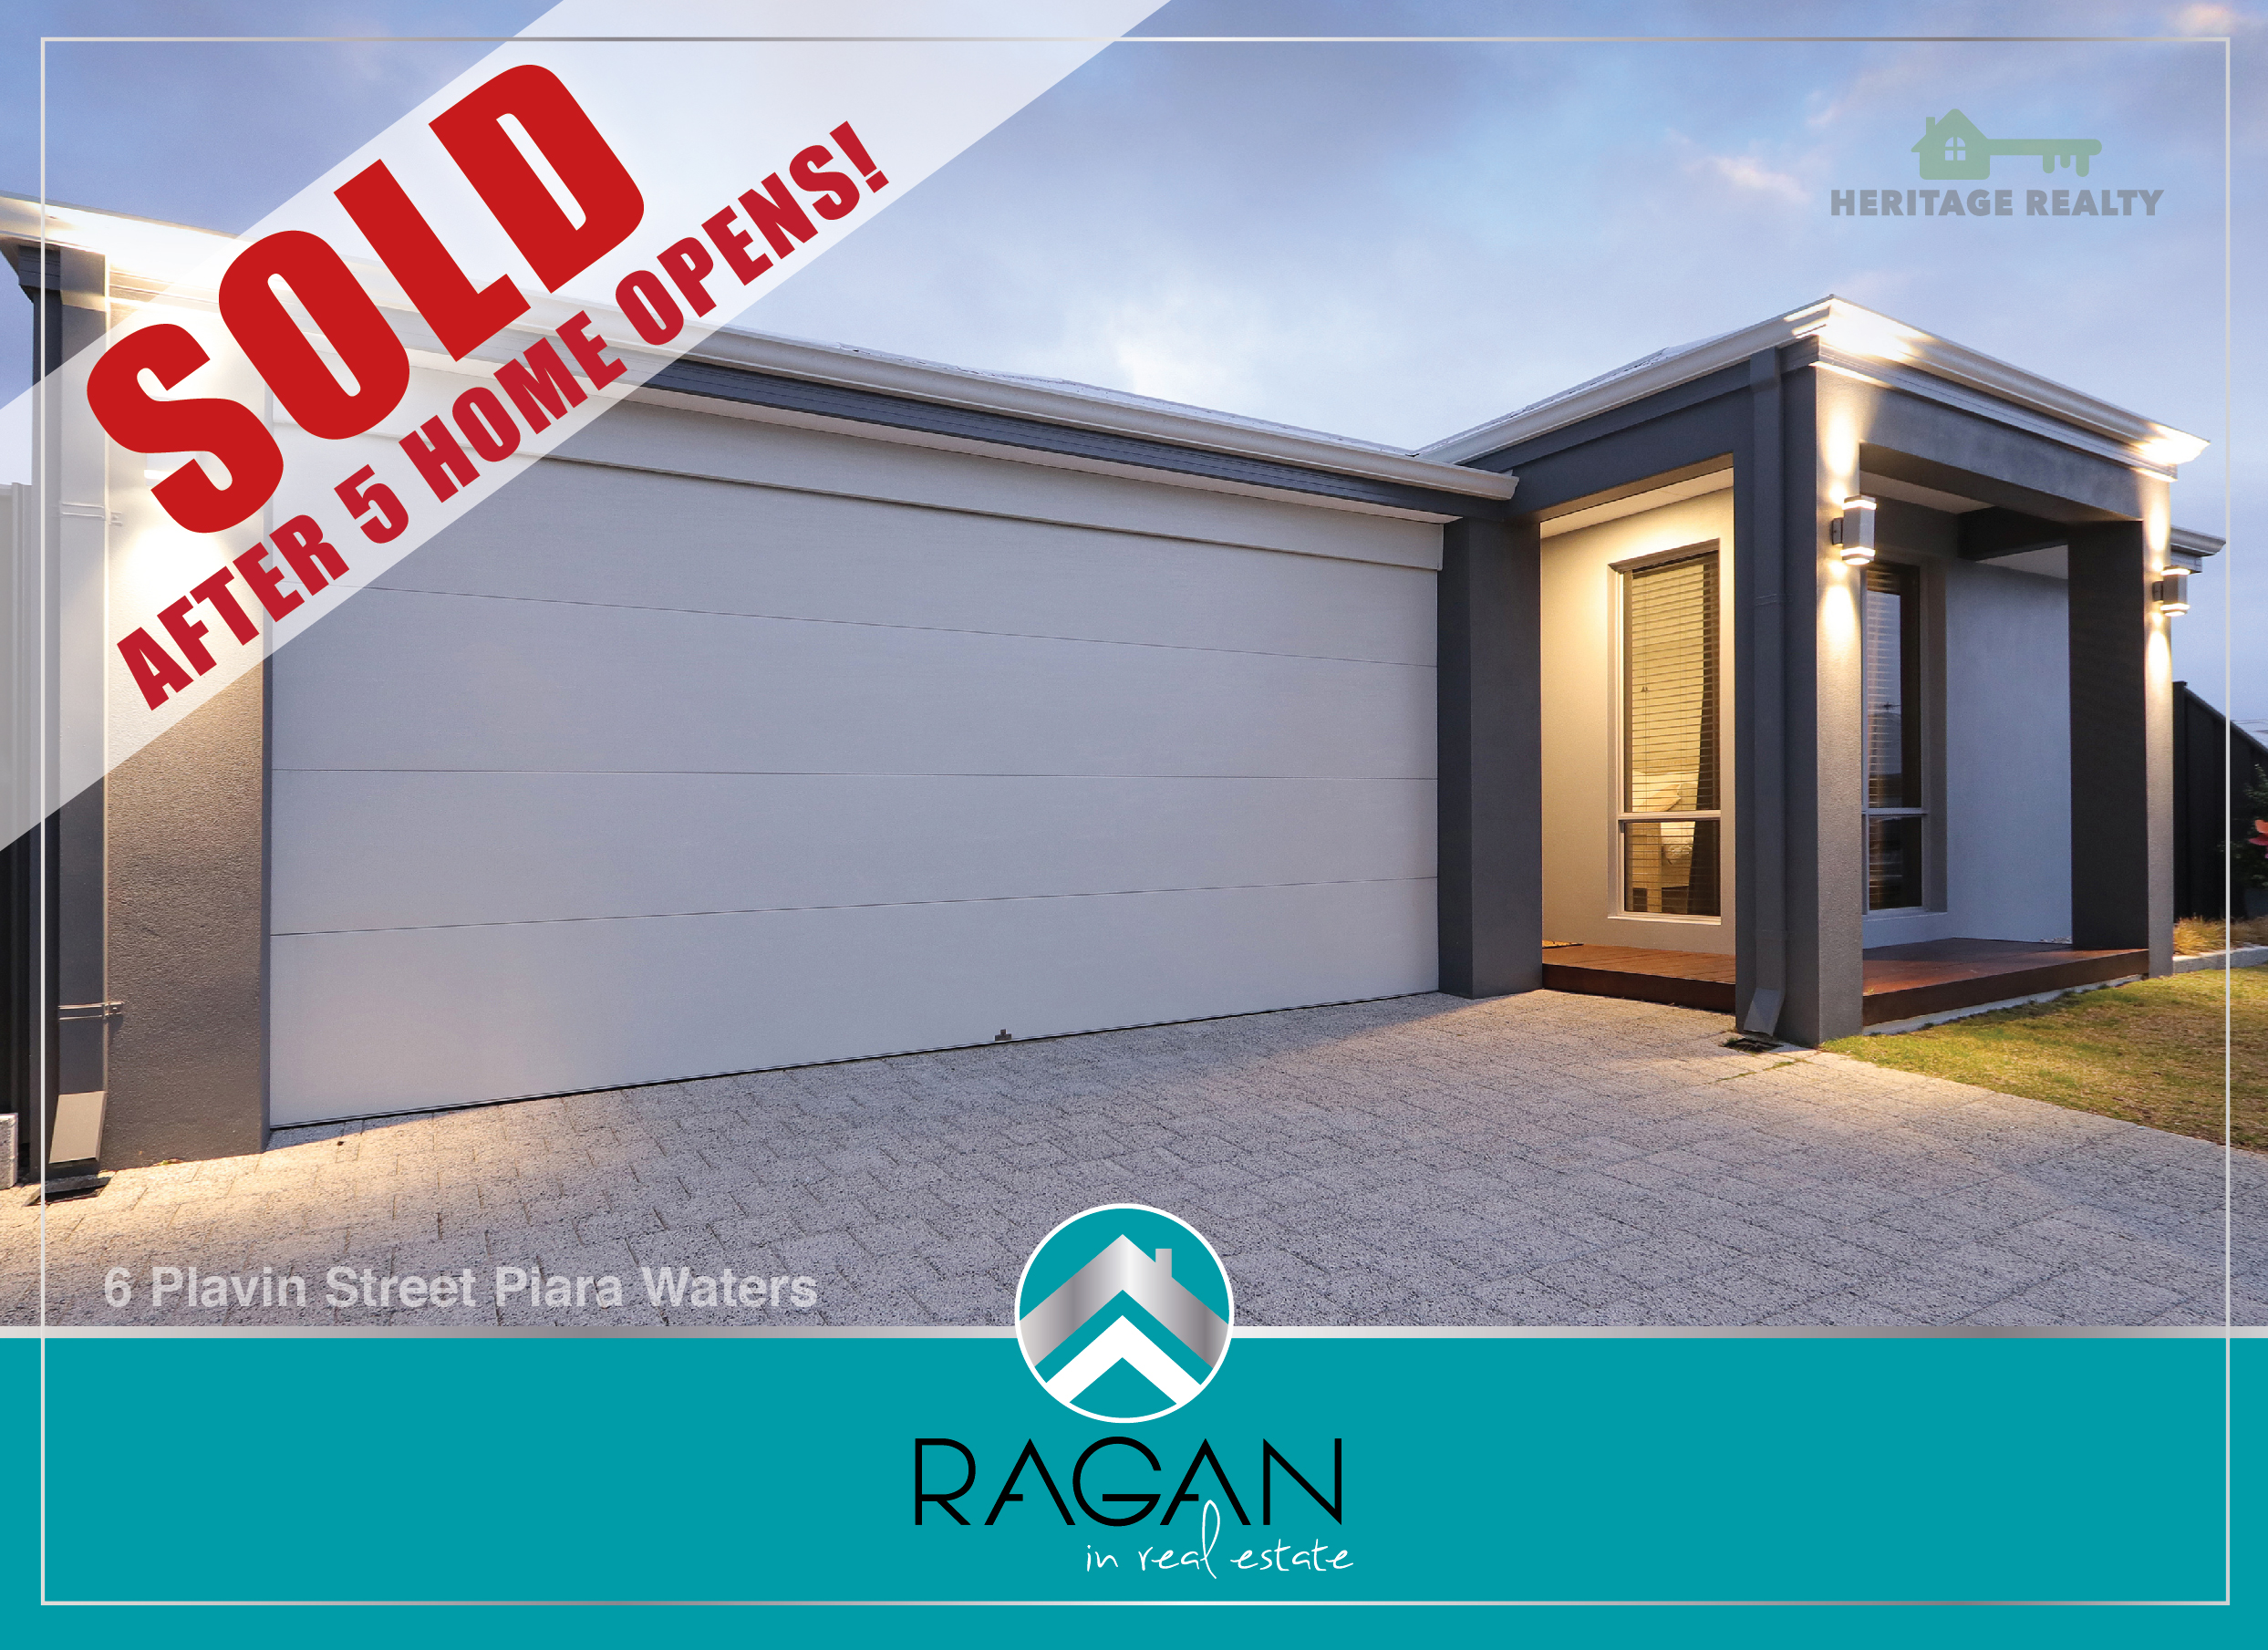 SOLD AFTER FIVE HOME OPENS  ....